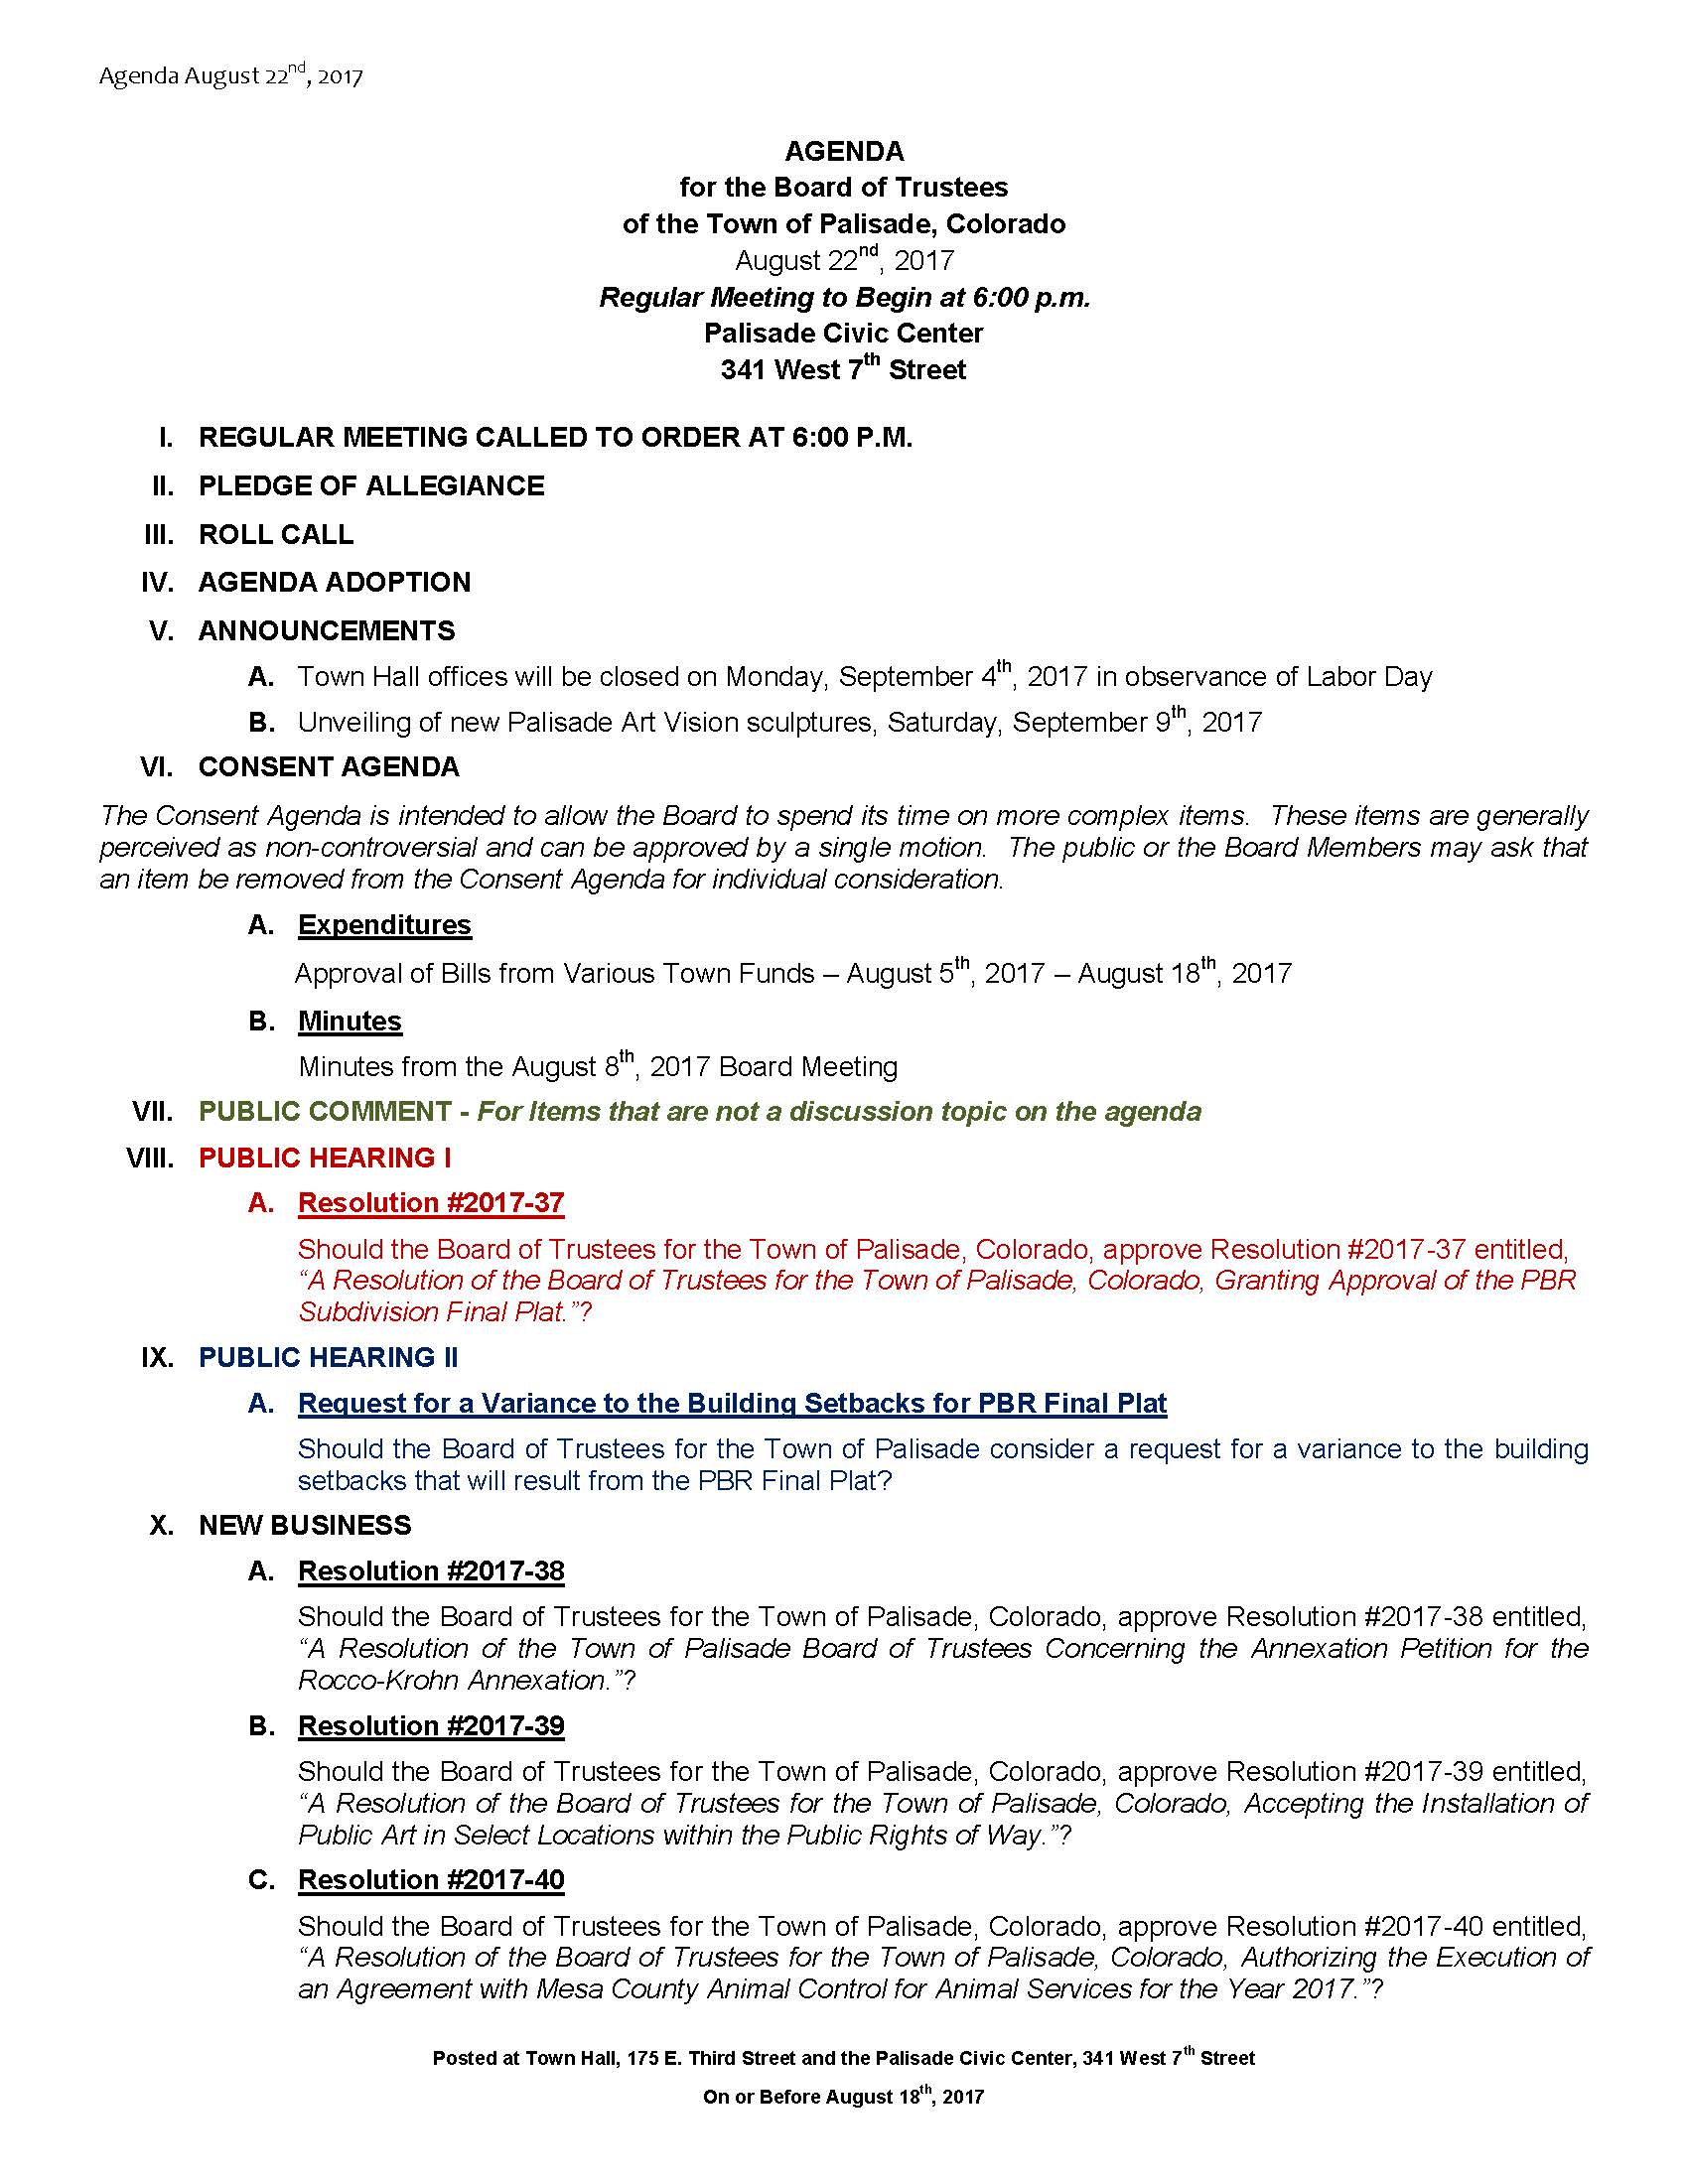 August 22nd 2017 Board Meeting Agenda Page 1